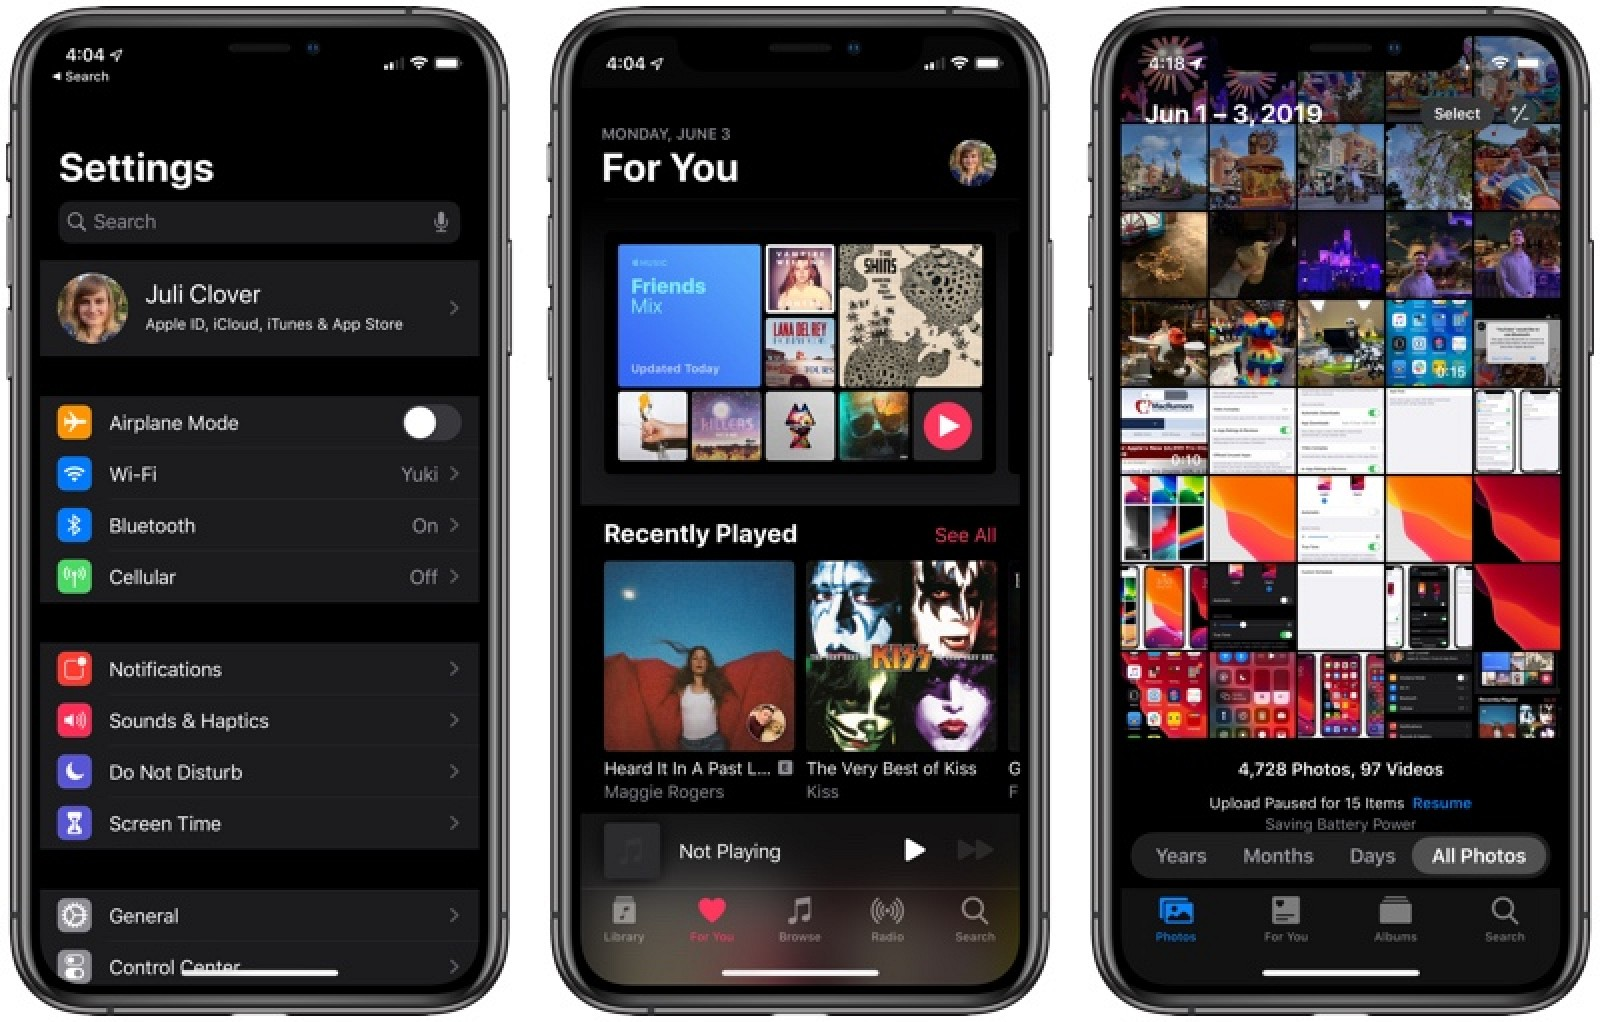 Check Out Dark Mode in iOS 13 - MacRumors